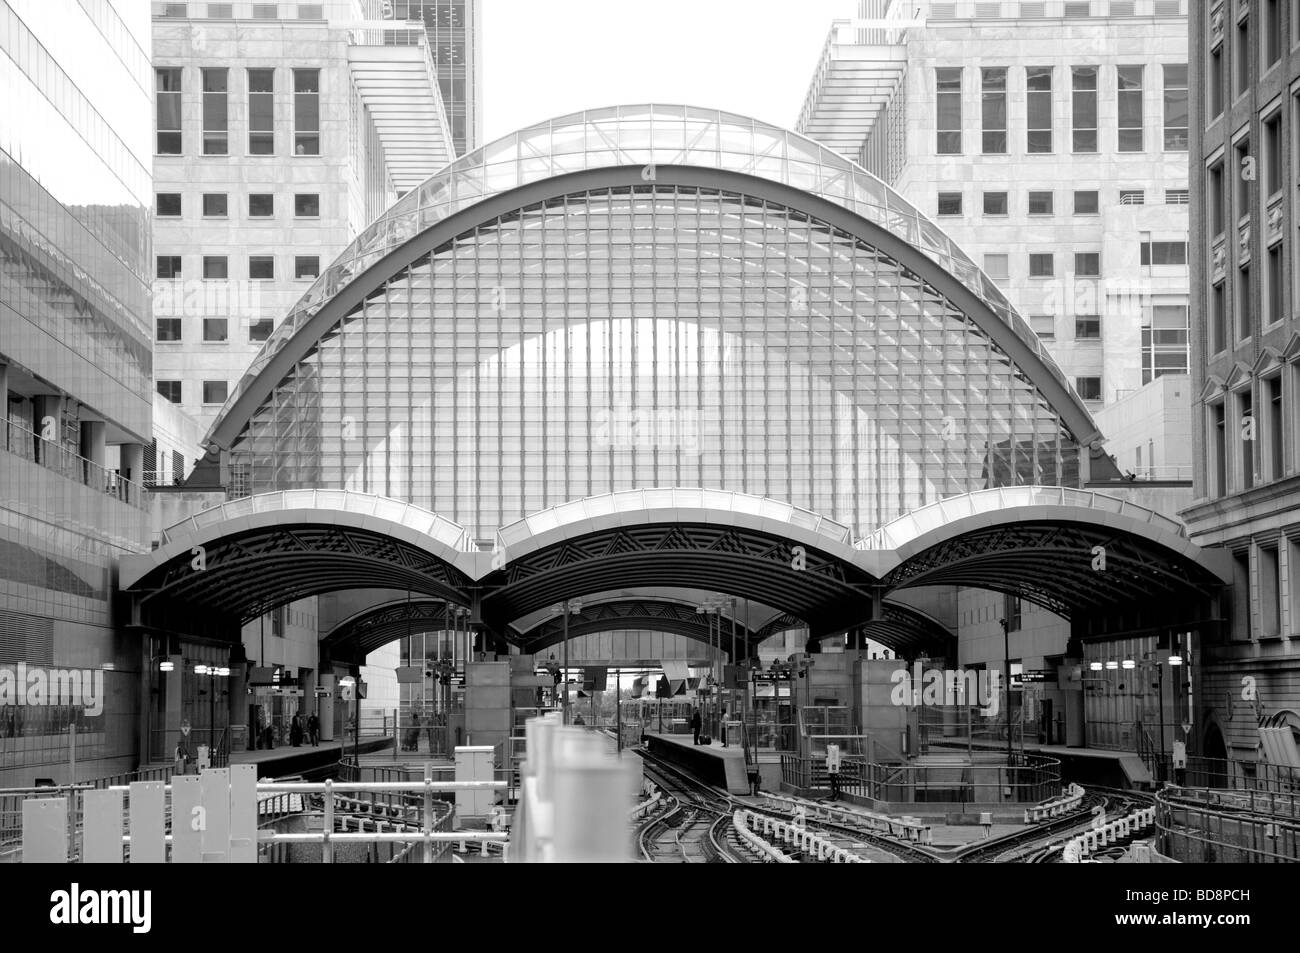 Canary Wharf Station on the Docklands Light Railway - Stock Image